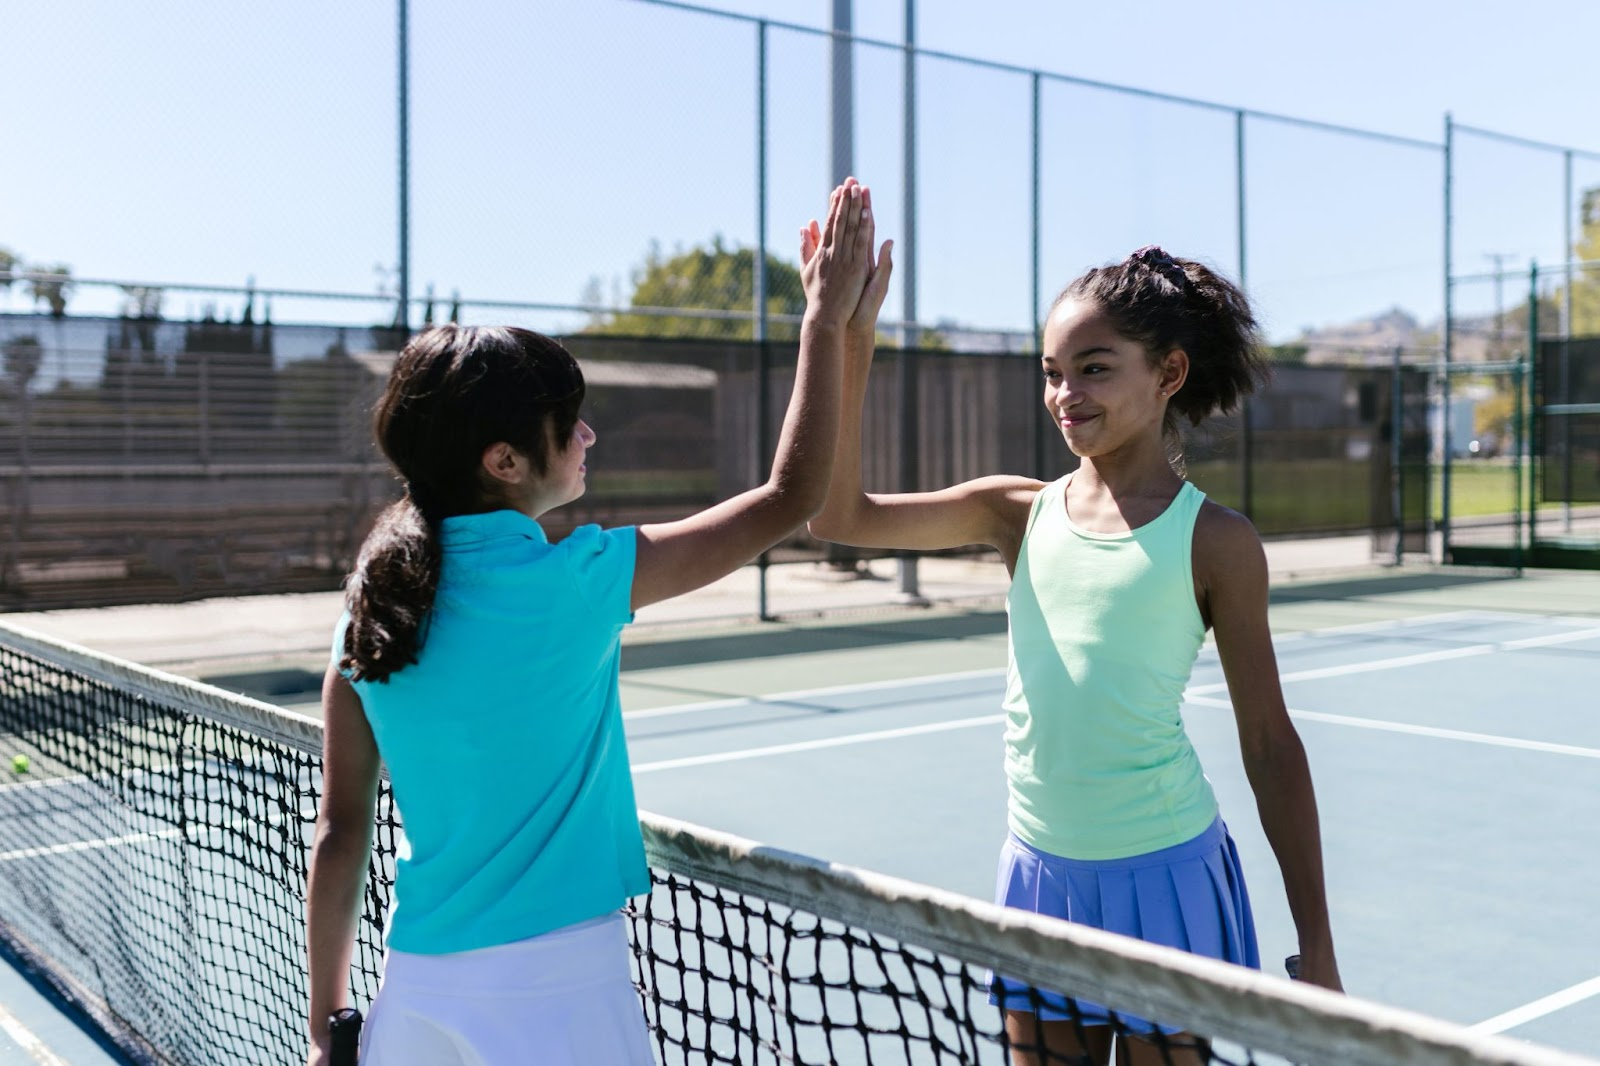 Two girls high-fiving each other after a tennis match.